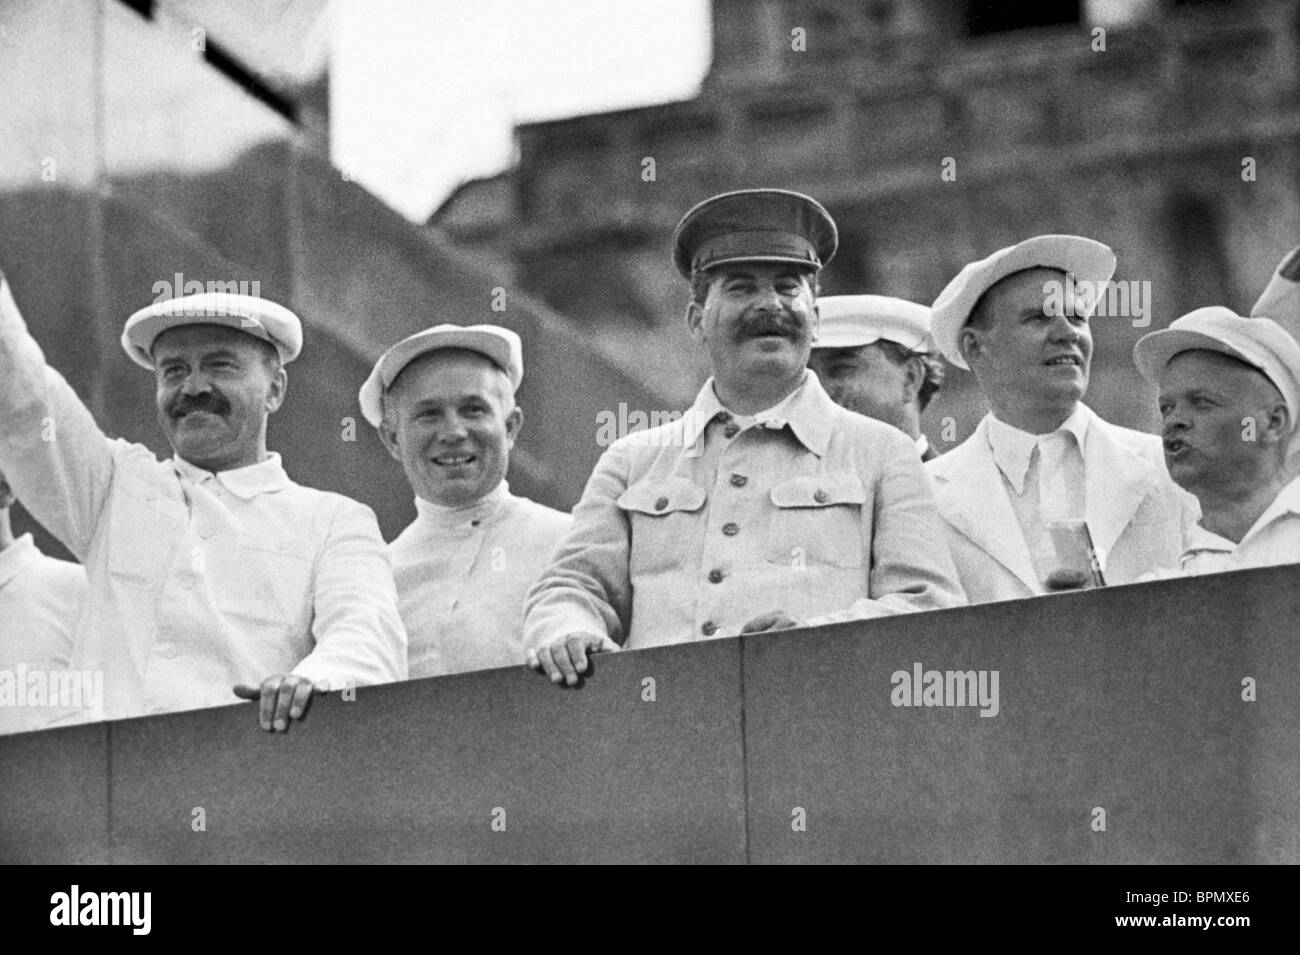 Image result for images of stalin reviewing parade